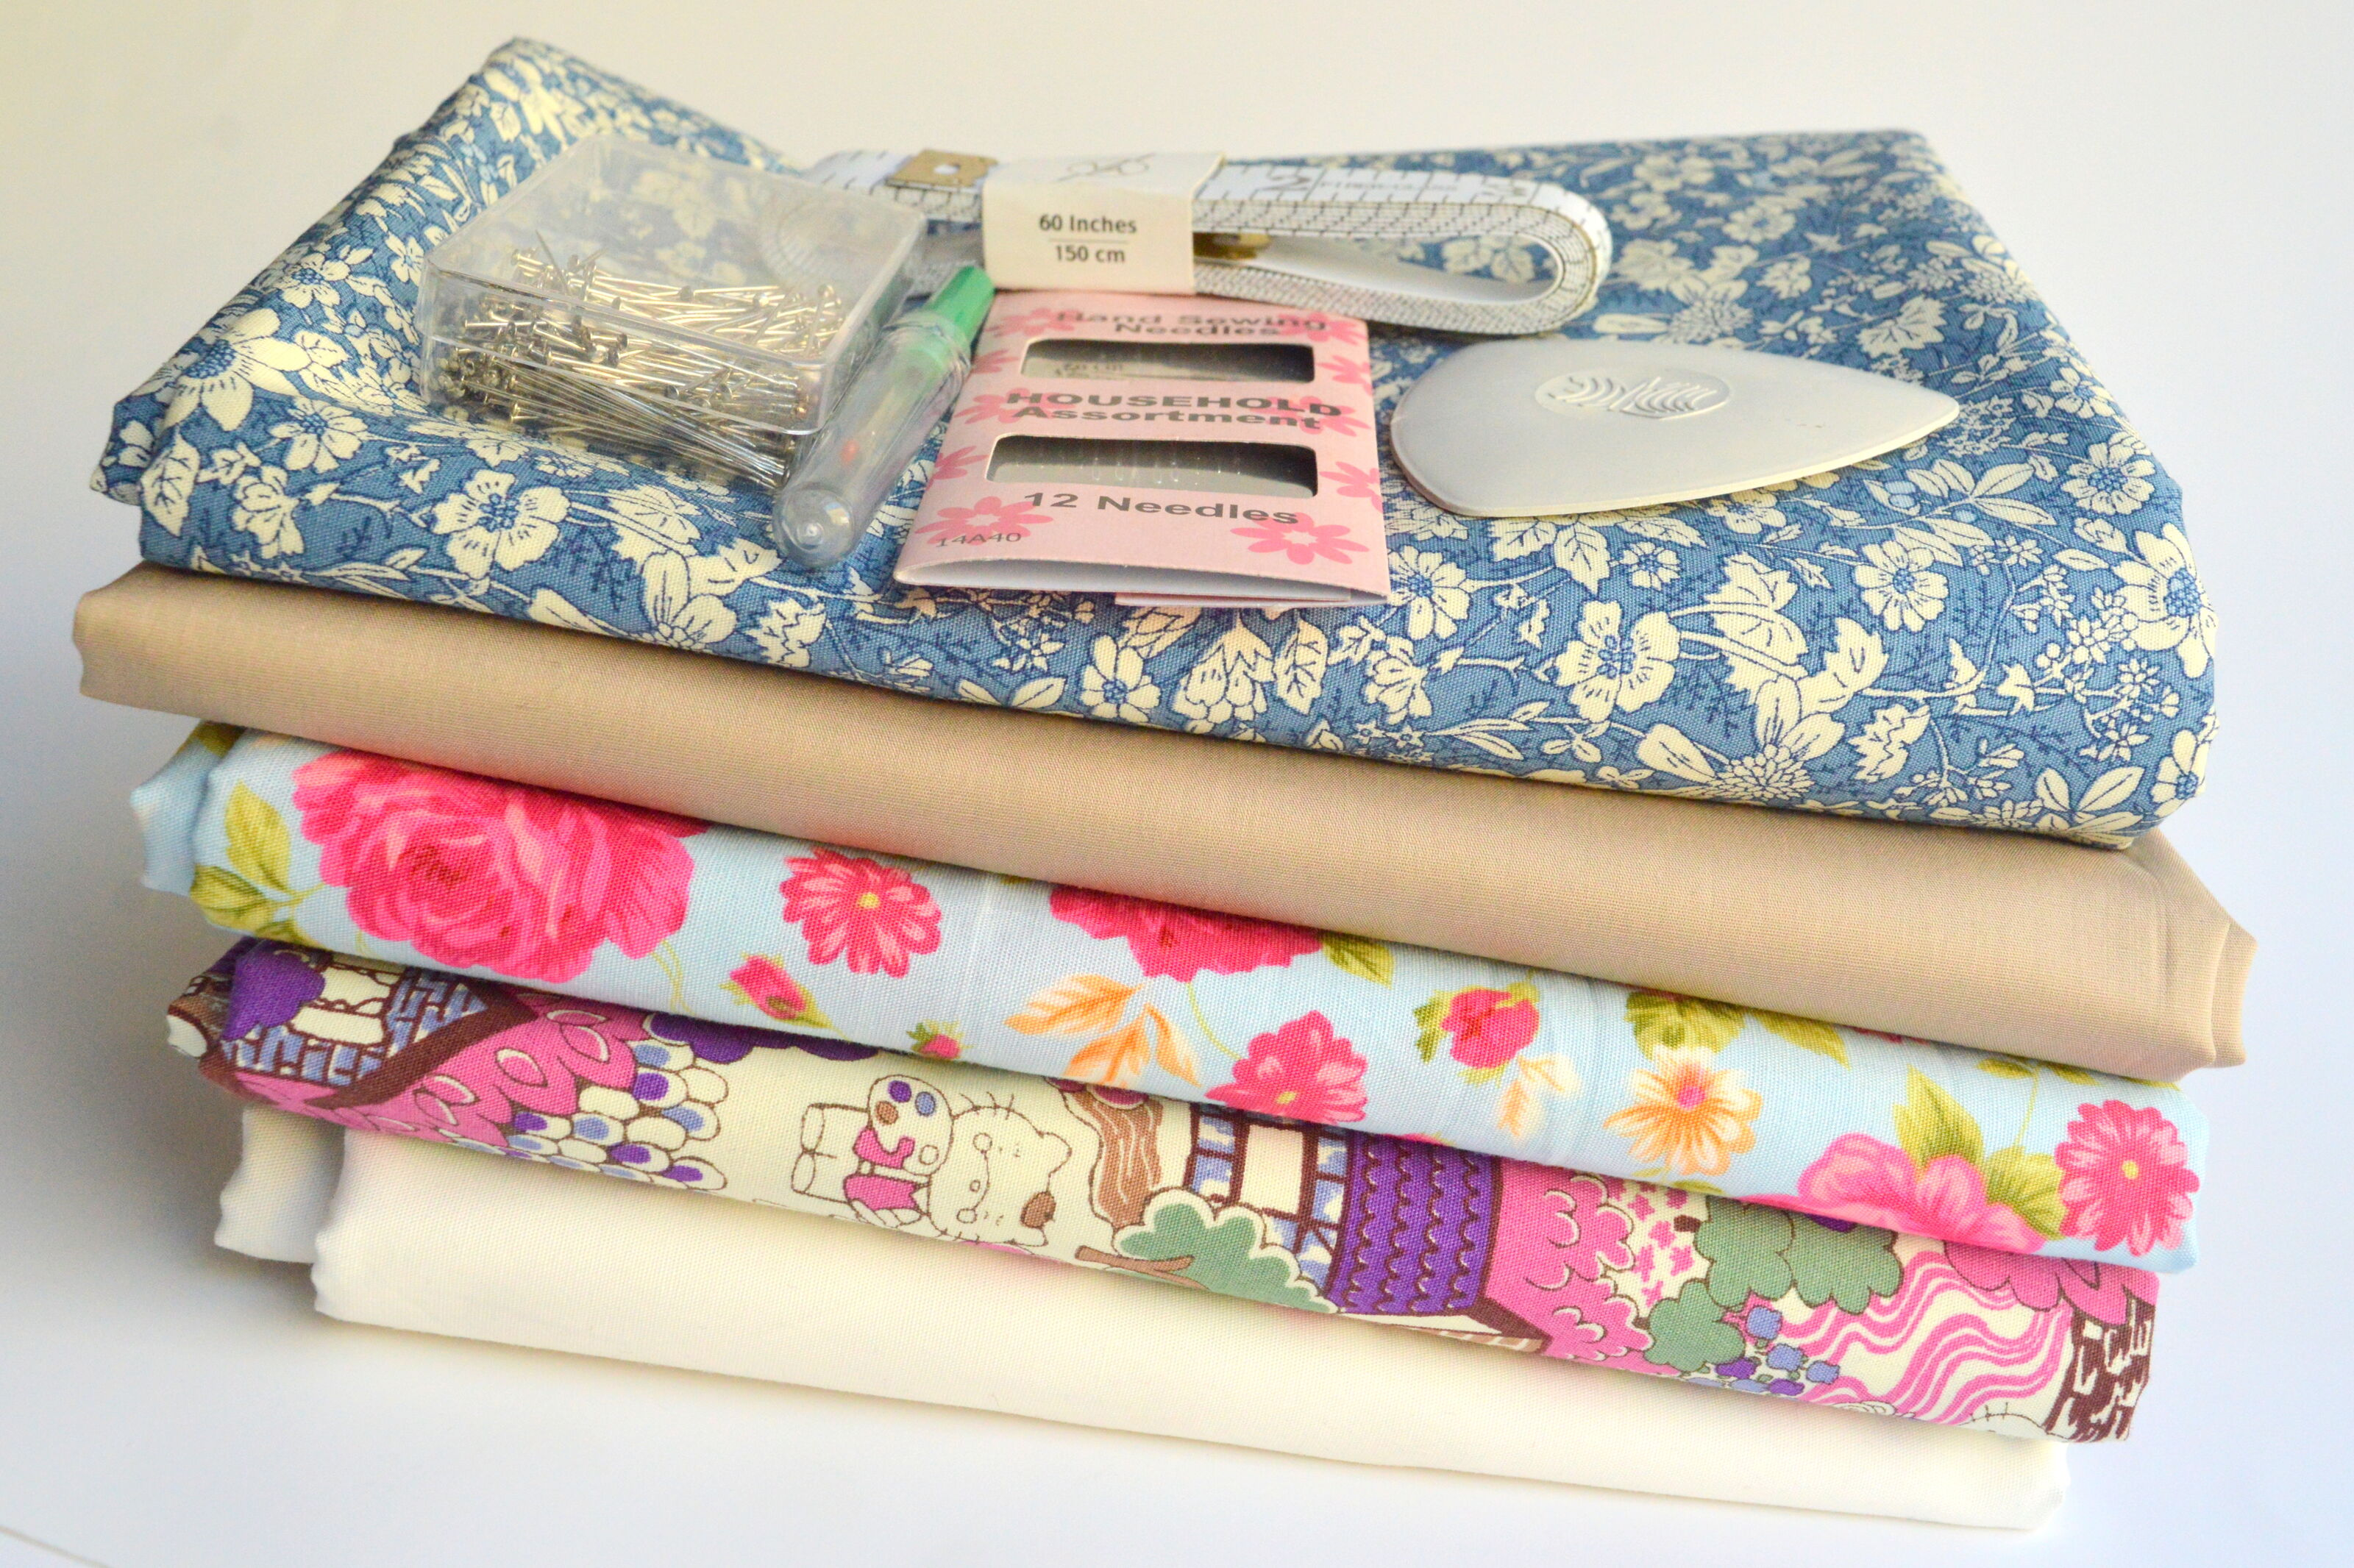 Cotton Pack Crafts Bundle With Accessories